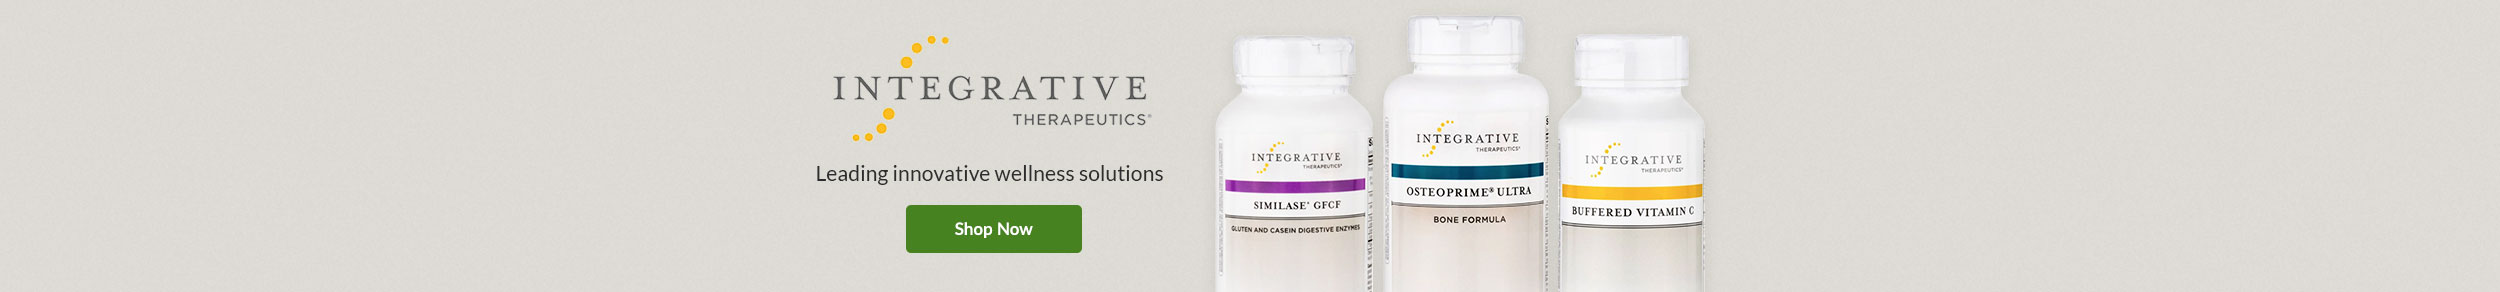 Integrative Therapeutics - Leading innovative wellness solutions